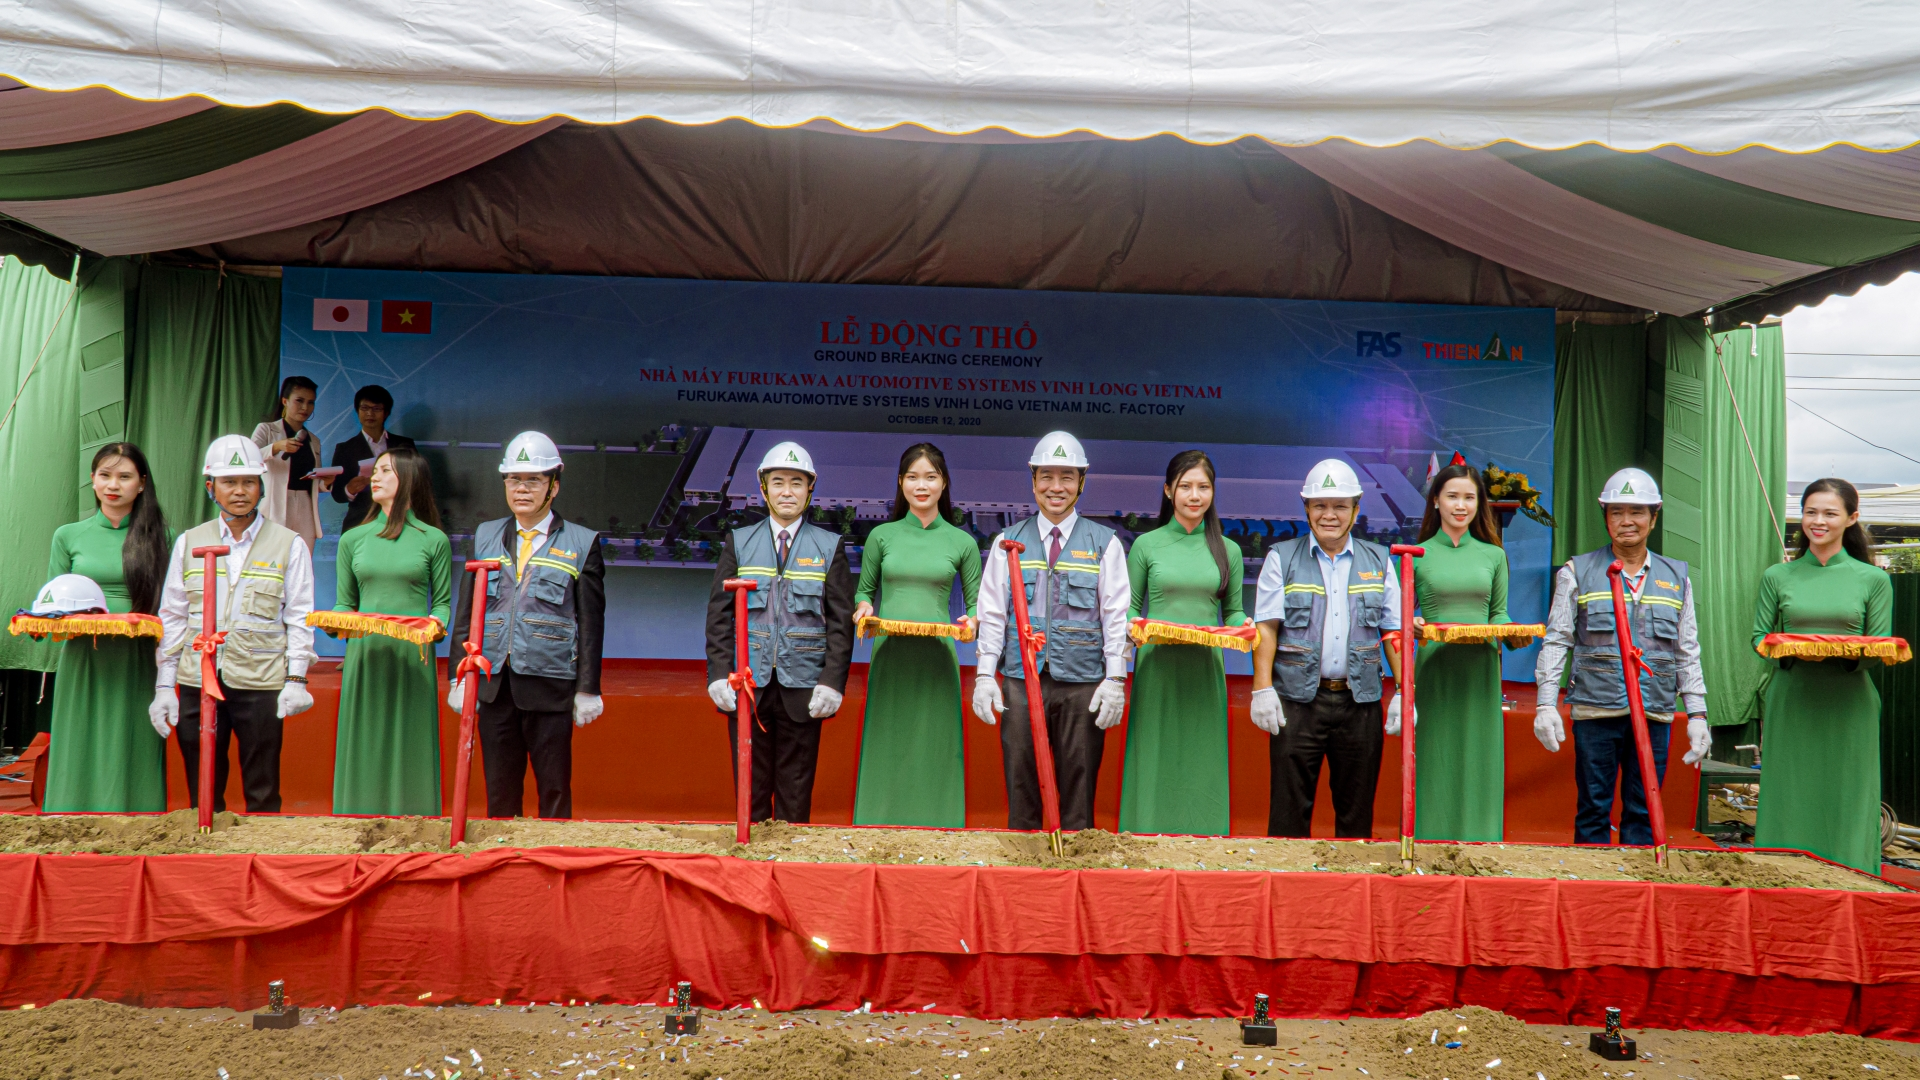 furukawa automotive systems inc and db general contractor thien an corp start construction of components factory in vinh long